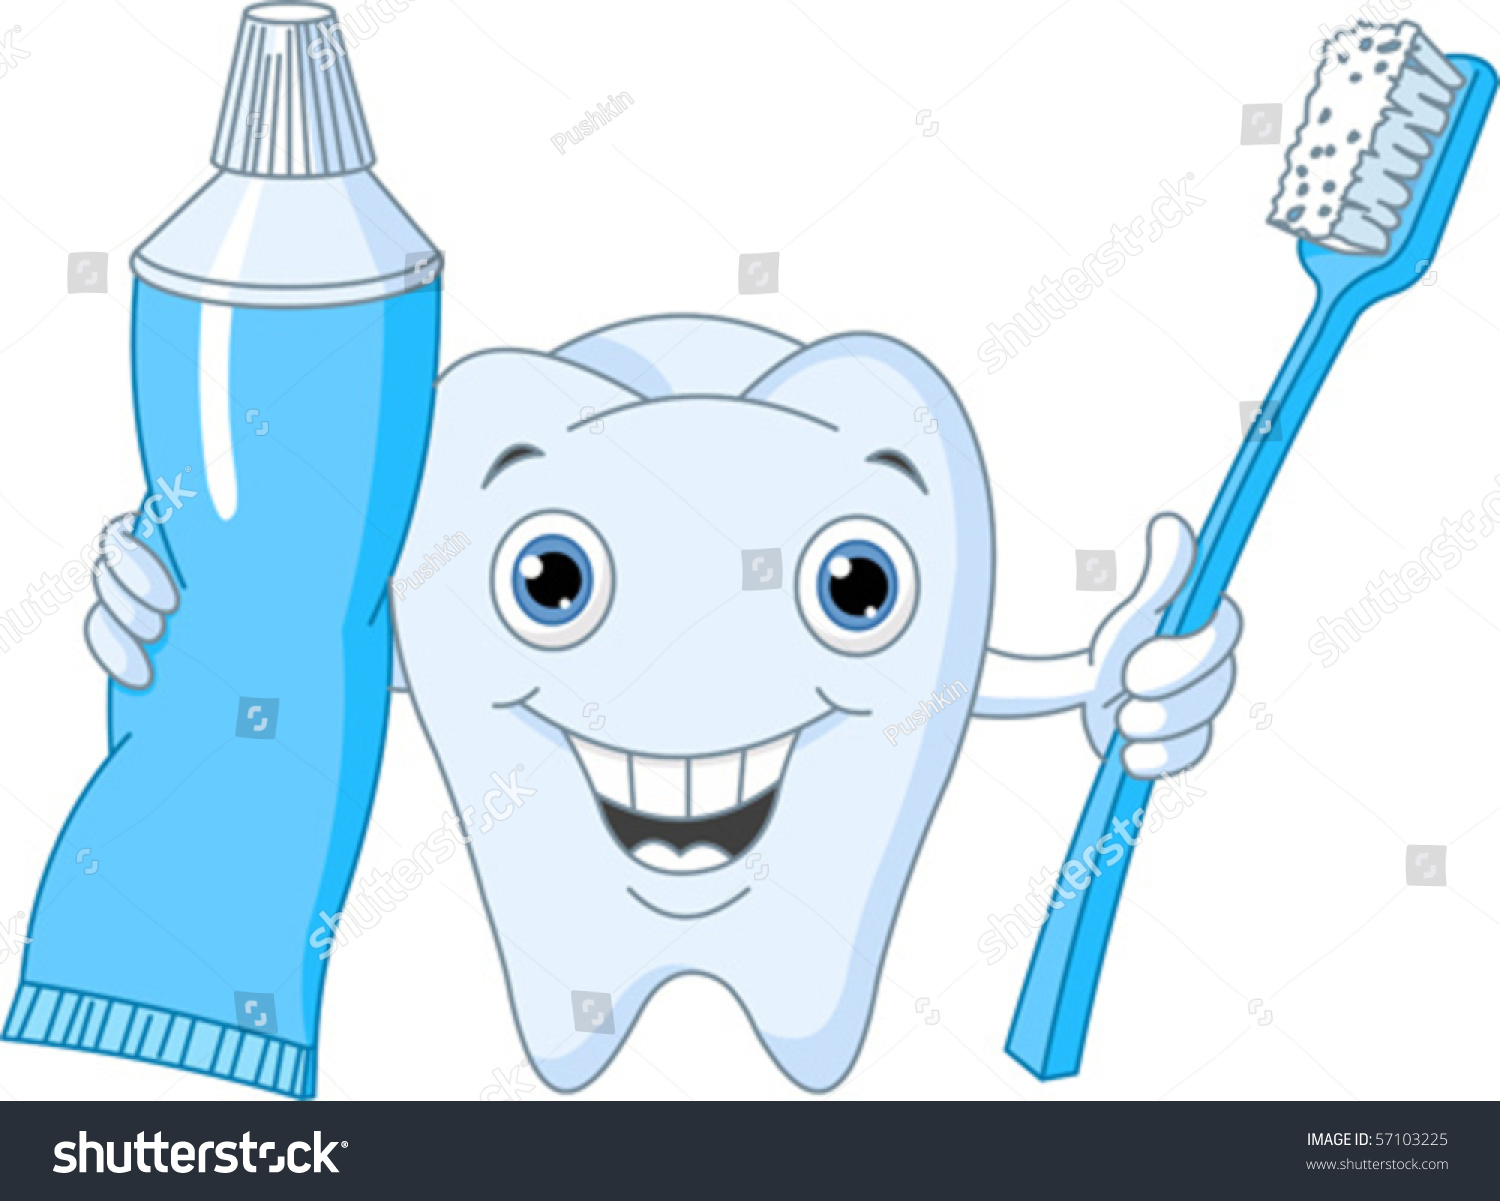 D Golden Framed Dollar Sign additionally Personal Boundaries Word Cloud Clipart Csp besides Men Brushing Their Teeth Collection X as well Toiltery Flat furthermore Funny Halloween Selfie Evil Scary Skeleton Taking Cell Phone Camera Picture Himself Background Haunted. on toothbrush clip art